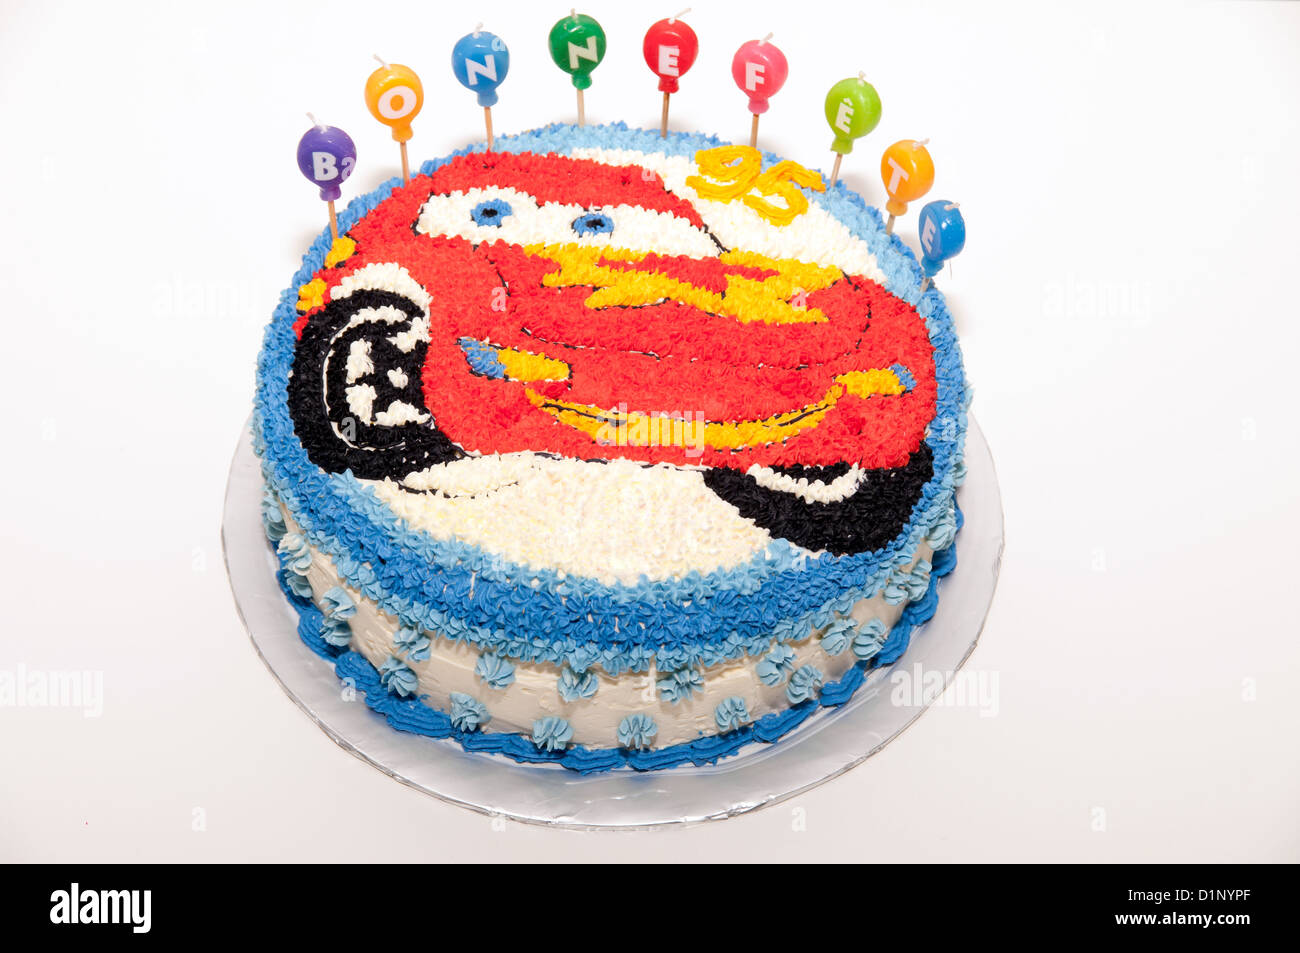 Pleasing A Happy Birthday Cake With Flash Mcqueen From Cars Decoration Personalised Birthday Cards Beptaeletsinfo